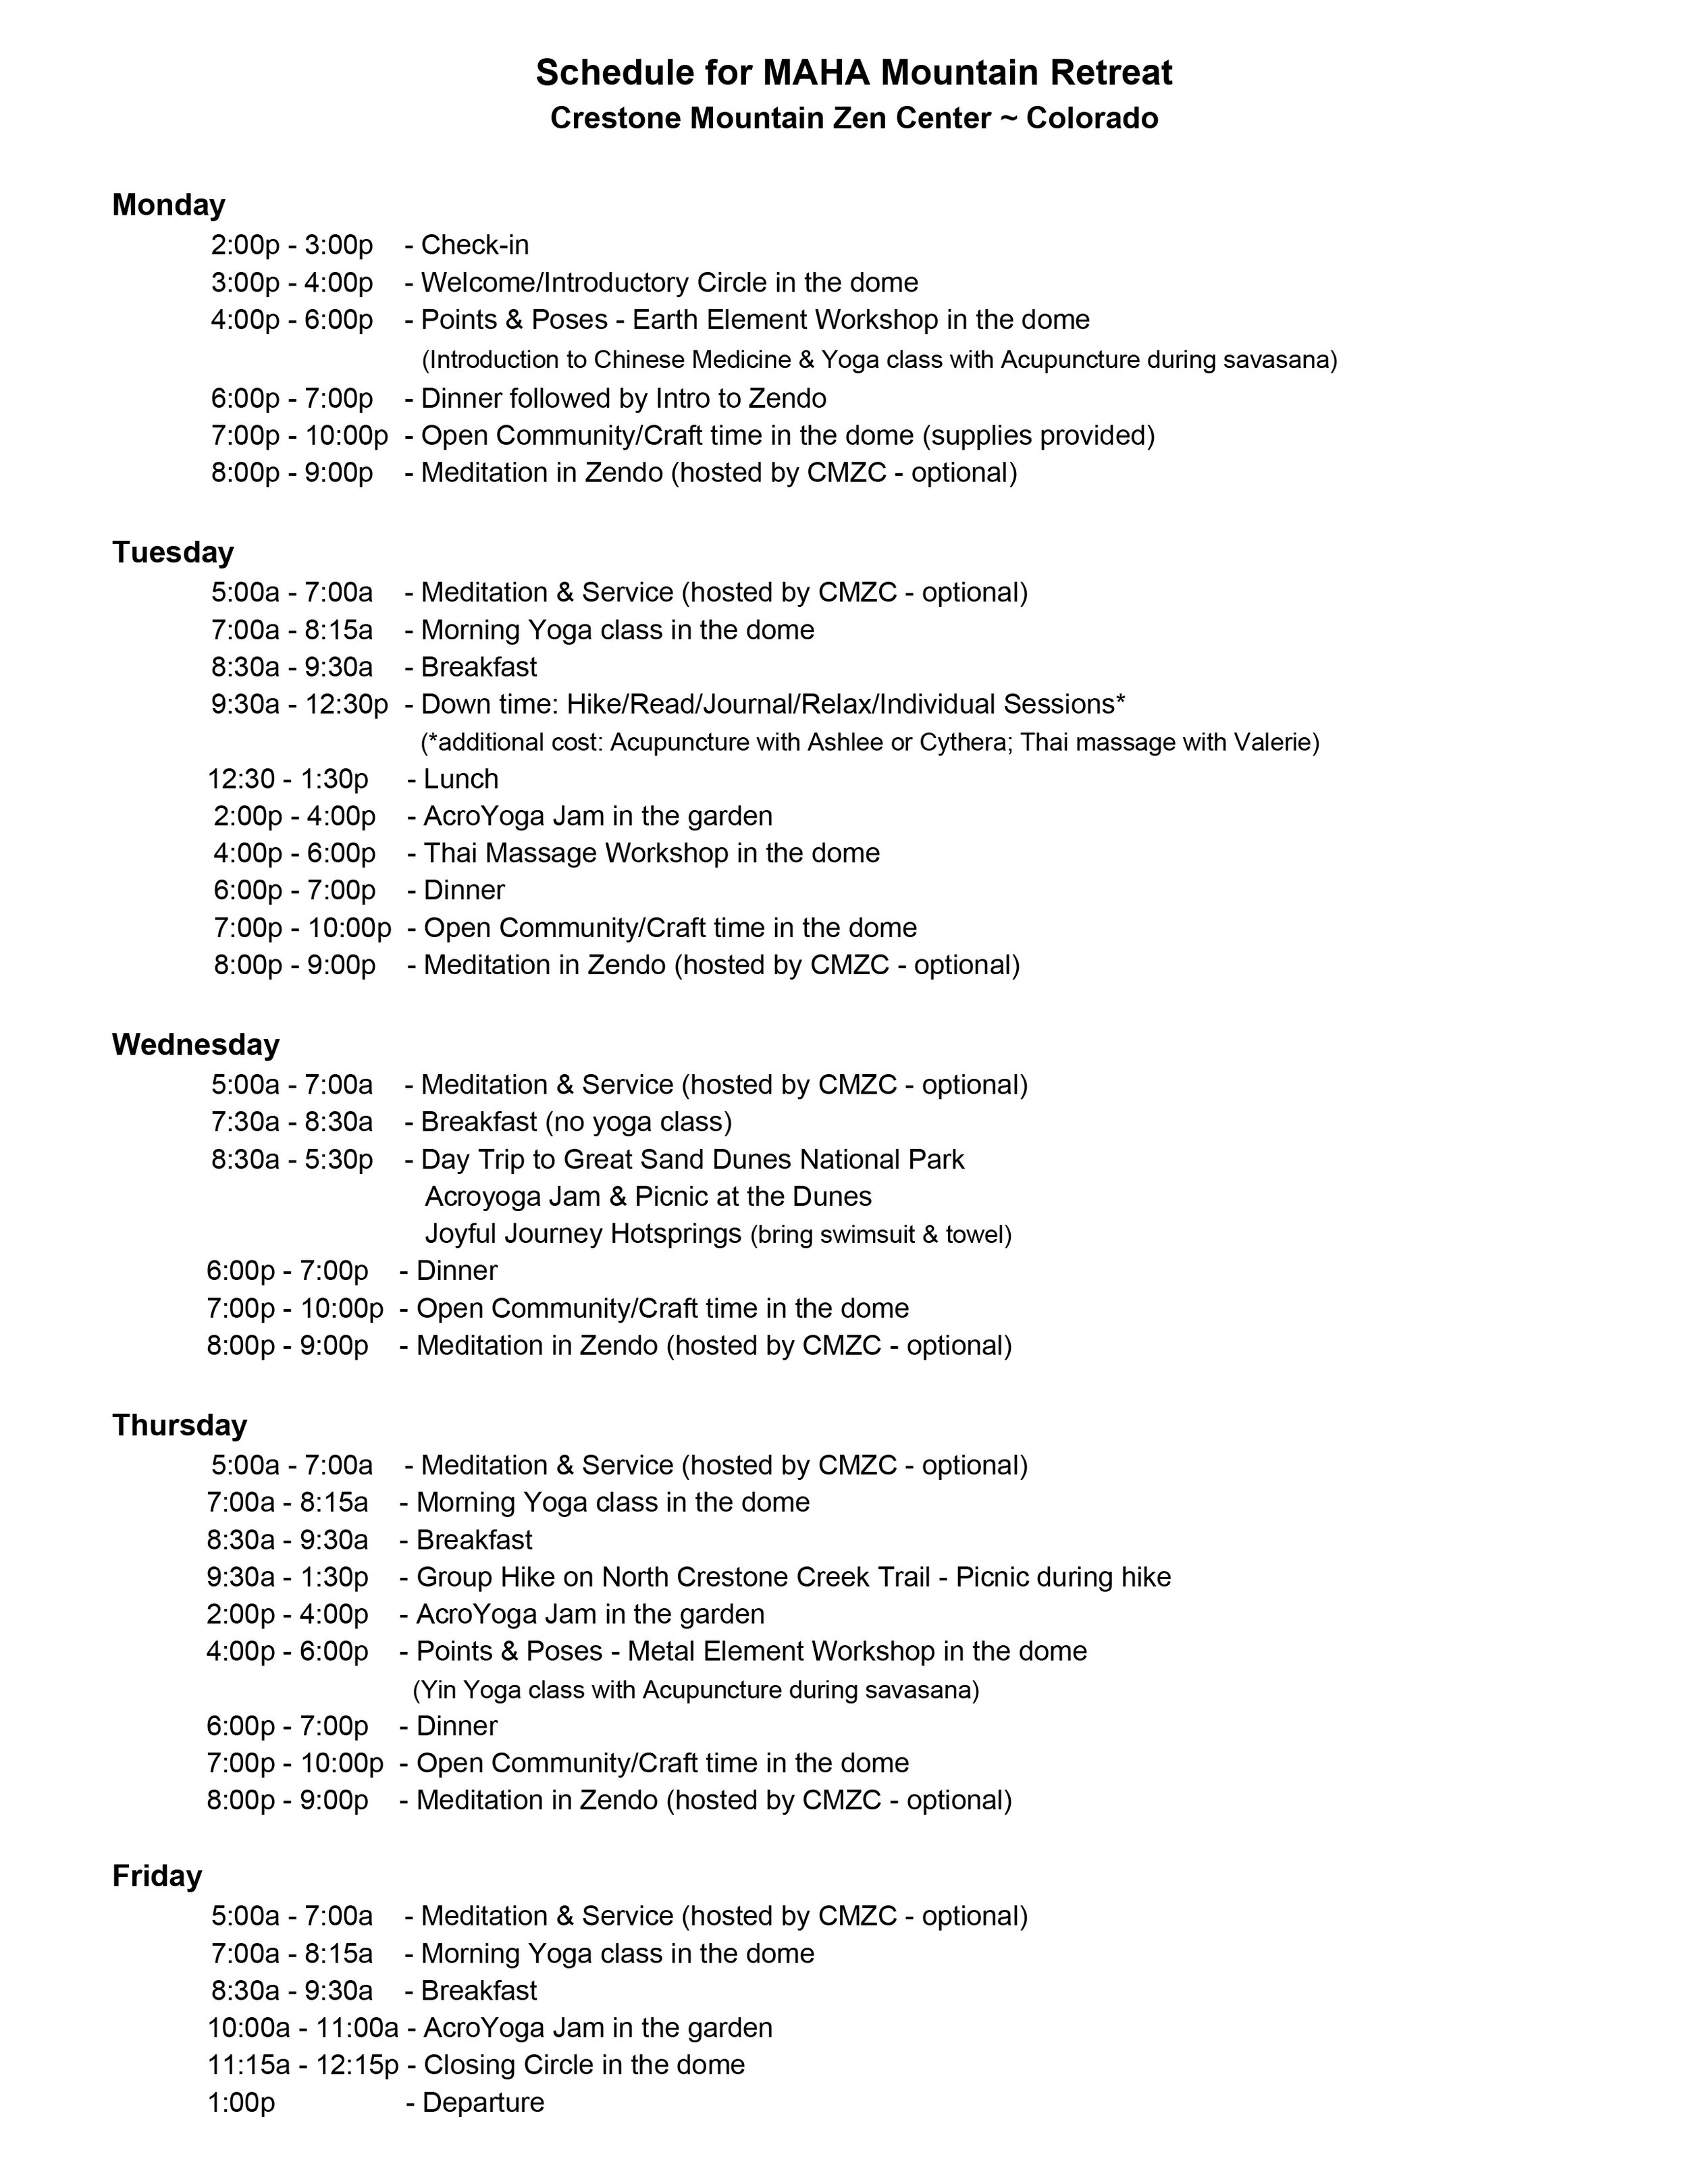 Schedule for MAHA Mountain Retreat.jpg